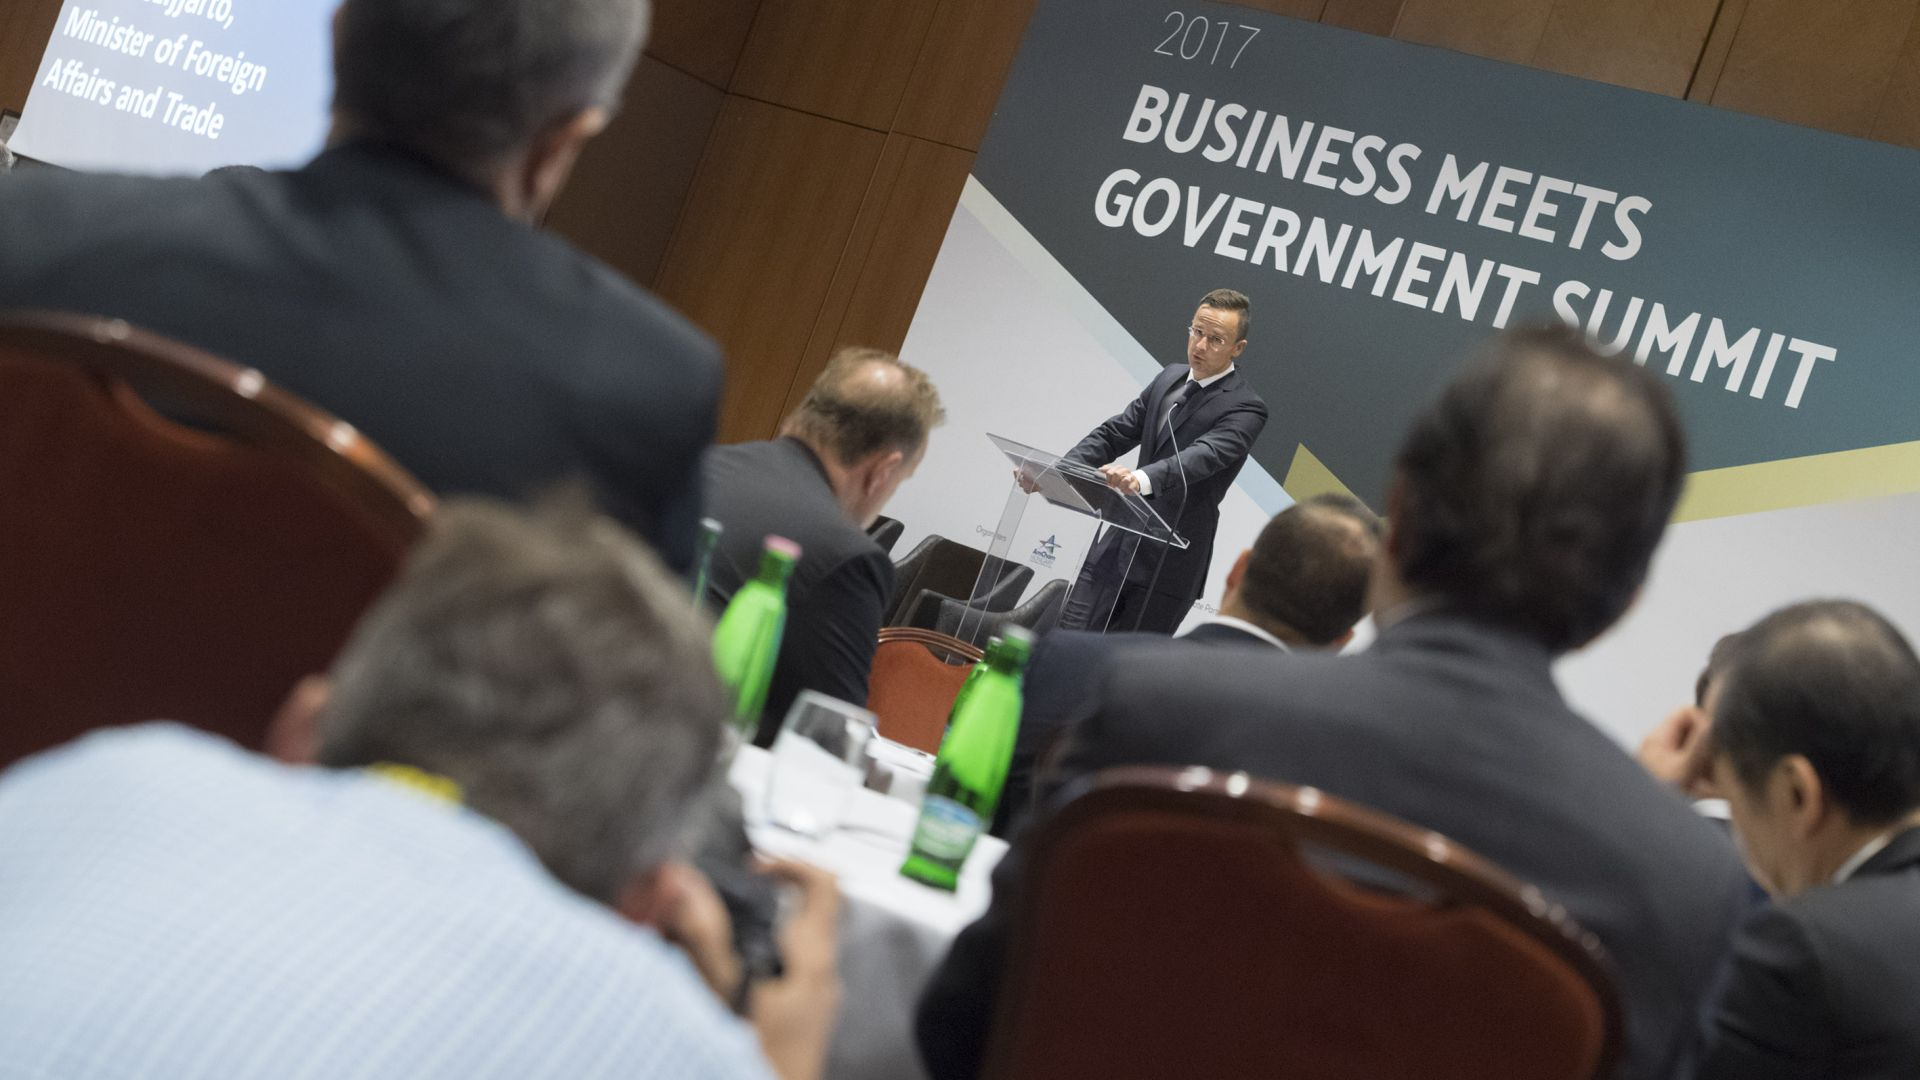 The dialogue between the Government and companies helps Hungary's competitiveness